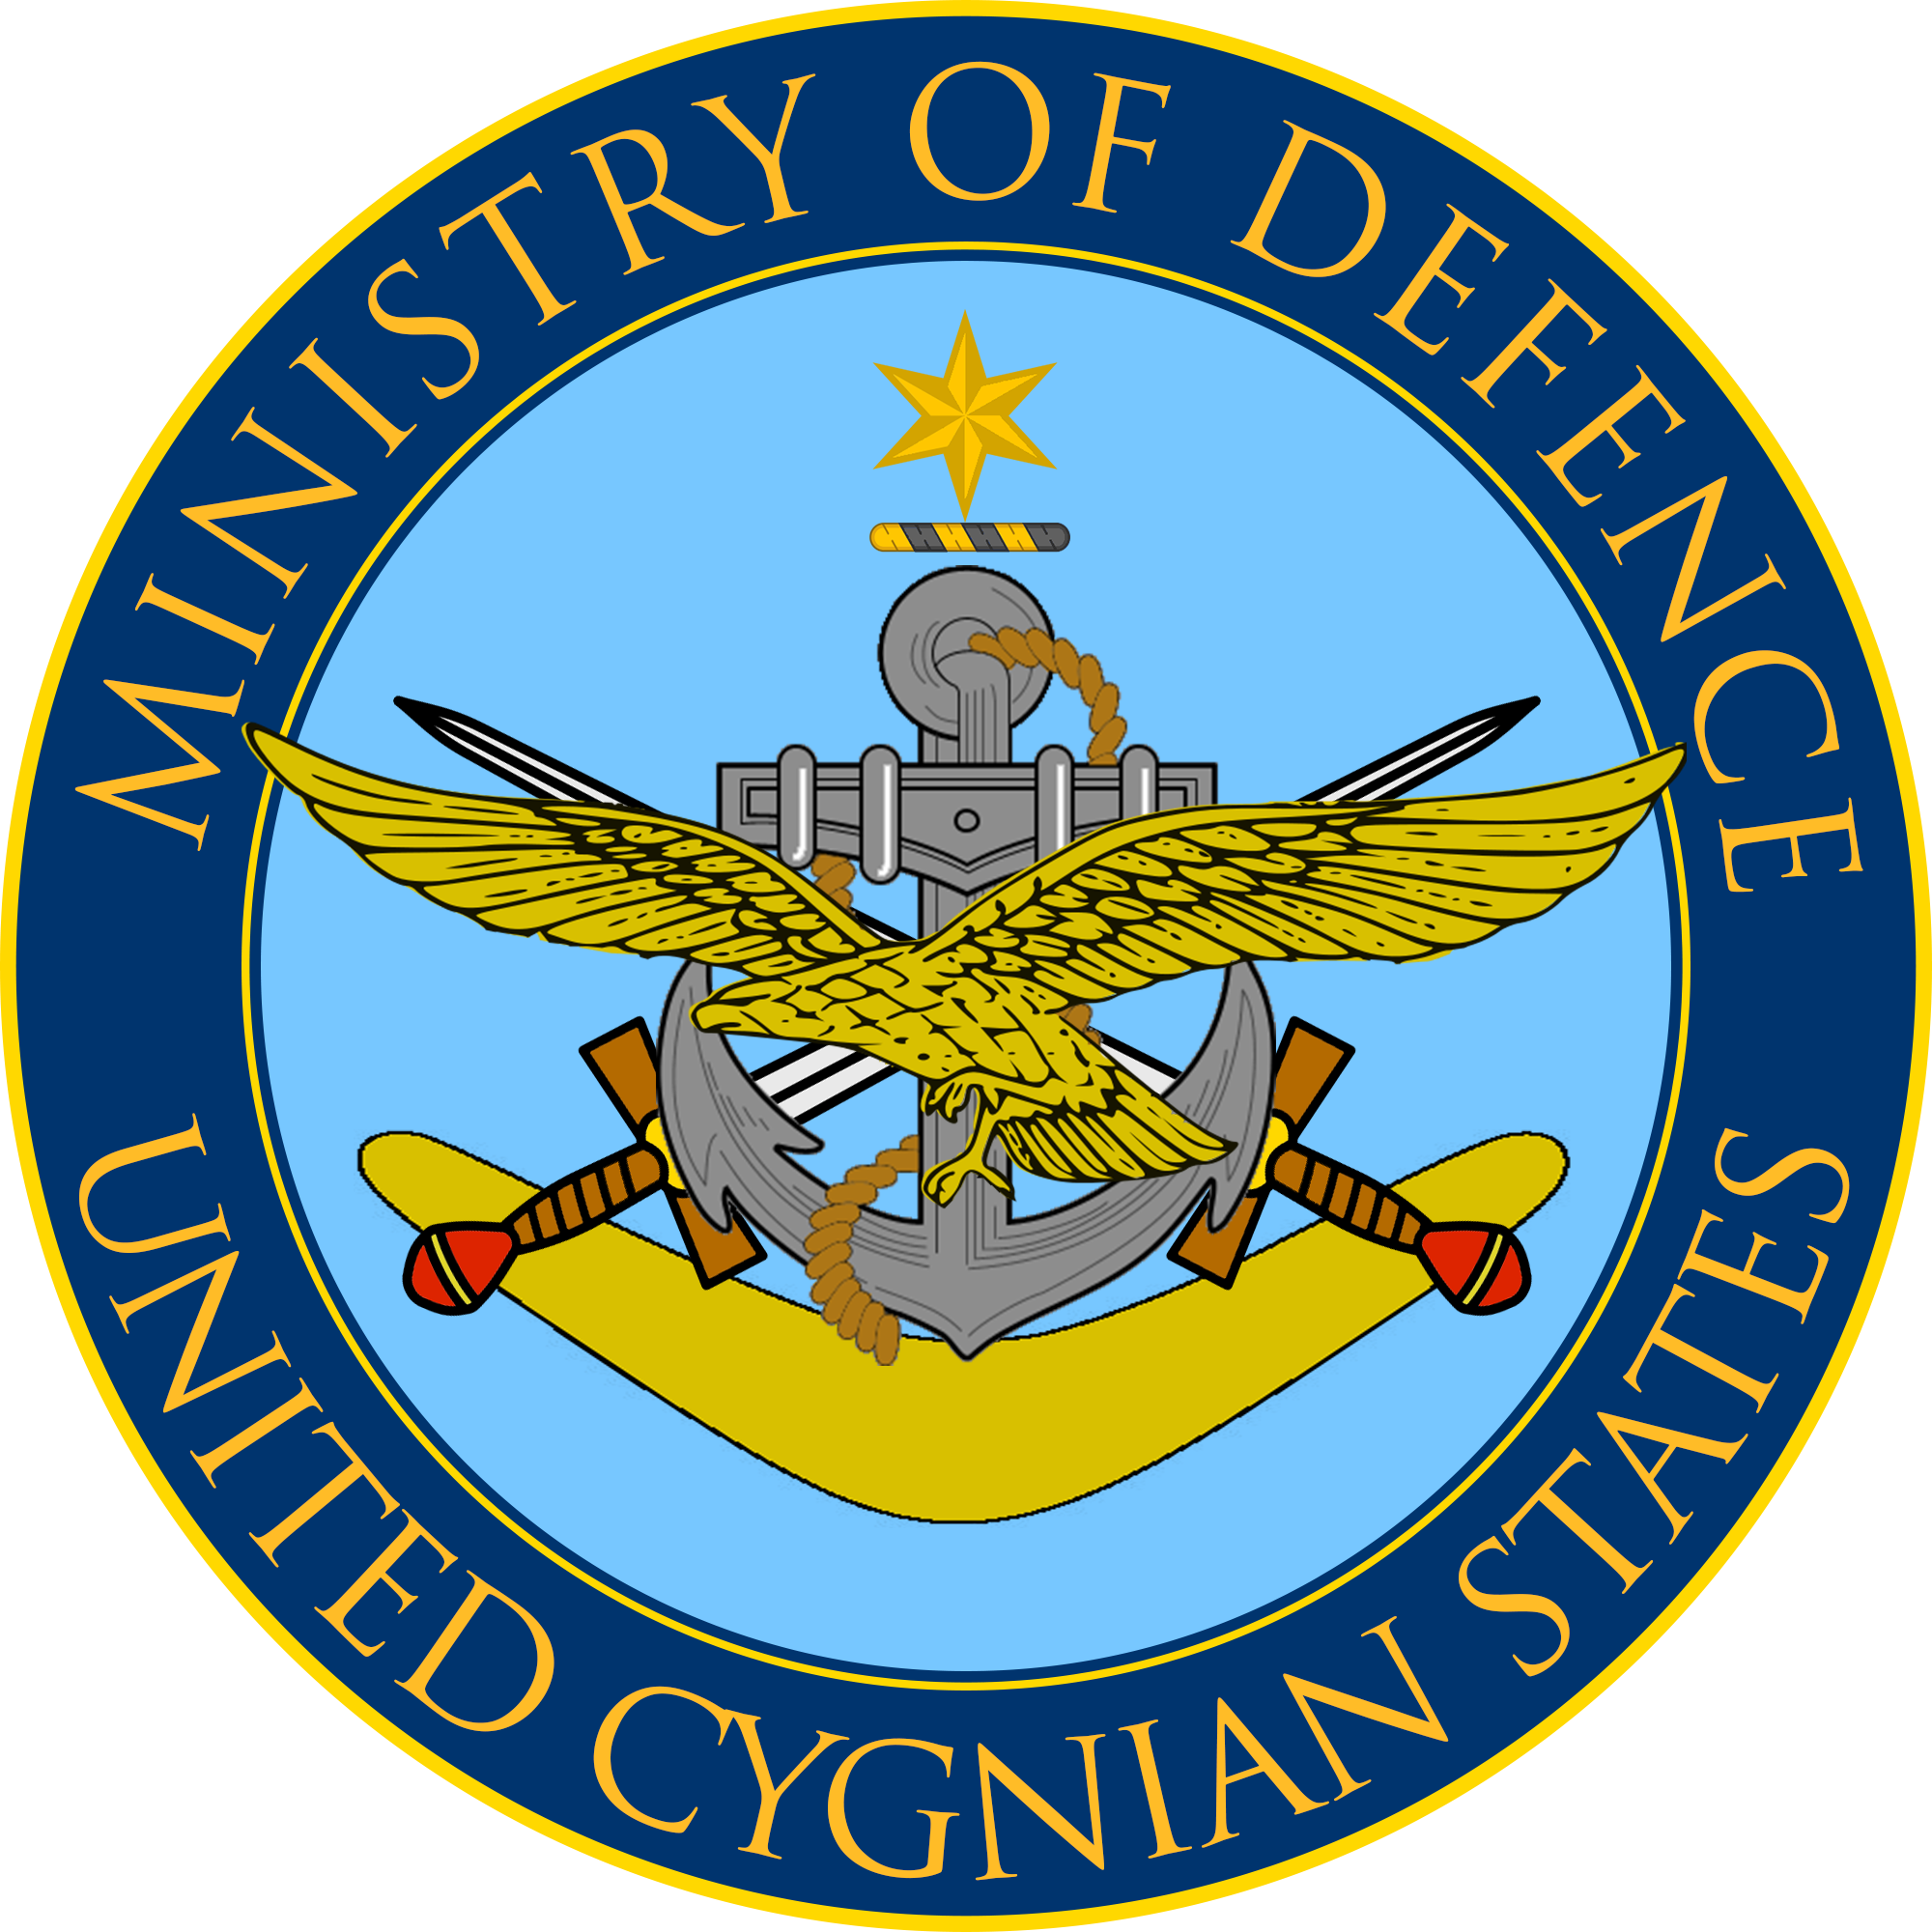 Cygnian Minister for Defence (Joan of What?)